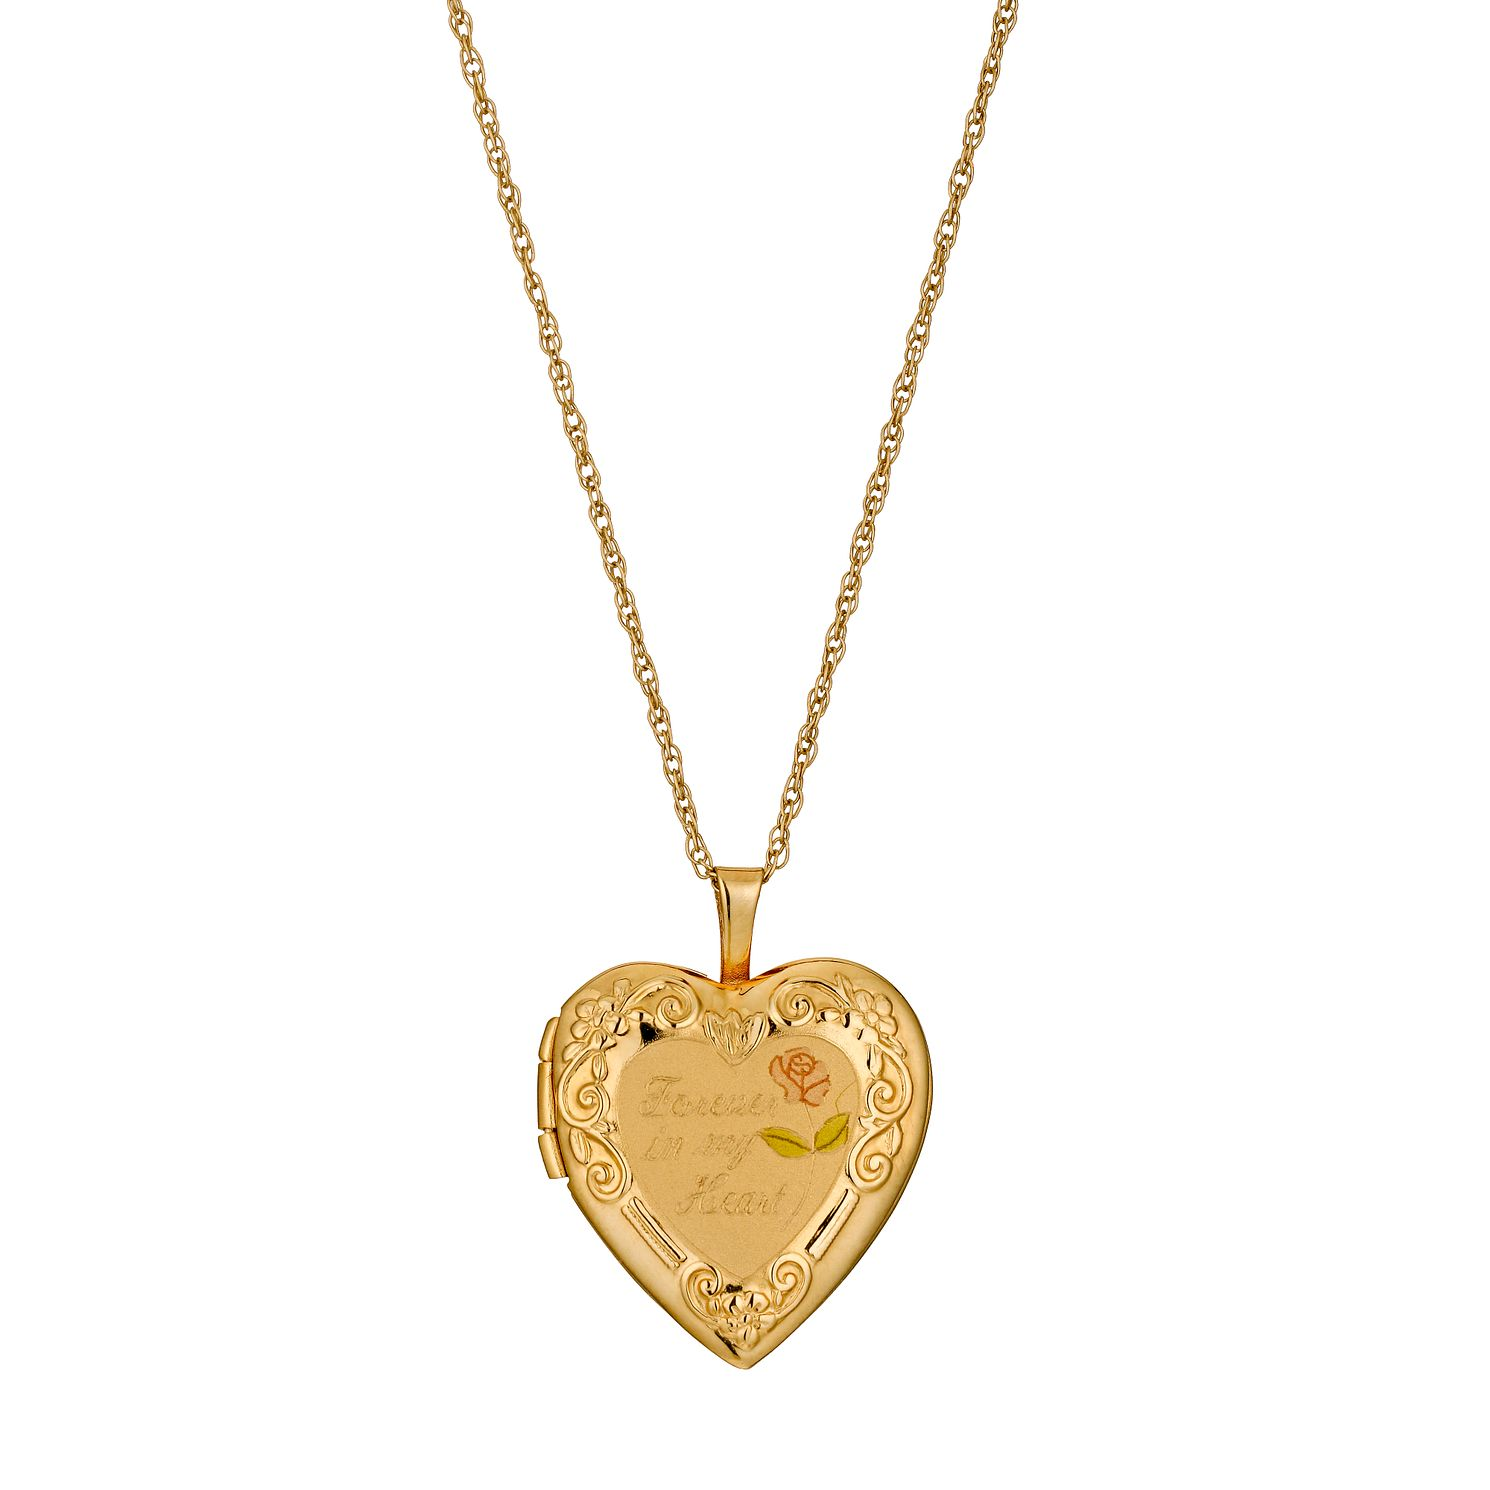 en kay to mv zm gold mom hover zoom kaystore solid locket lockets yellow heart